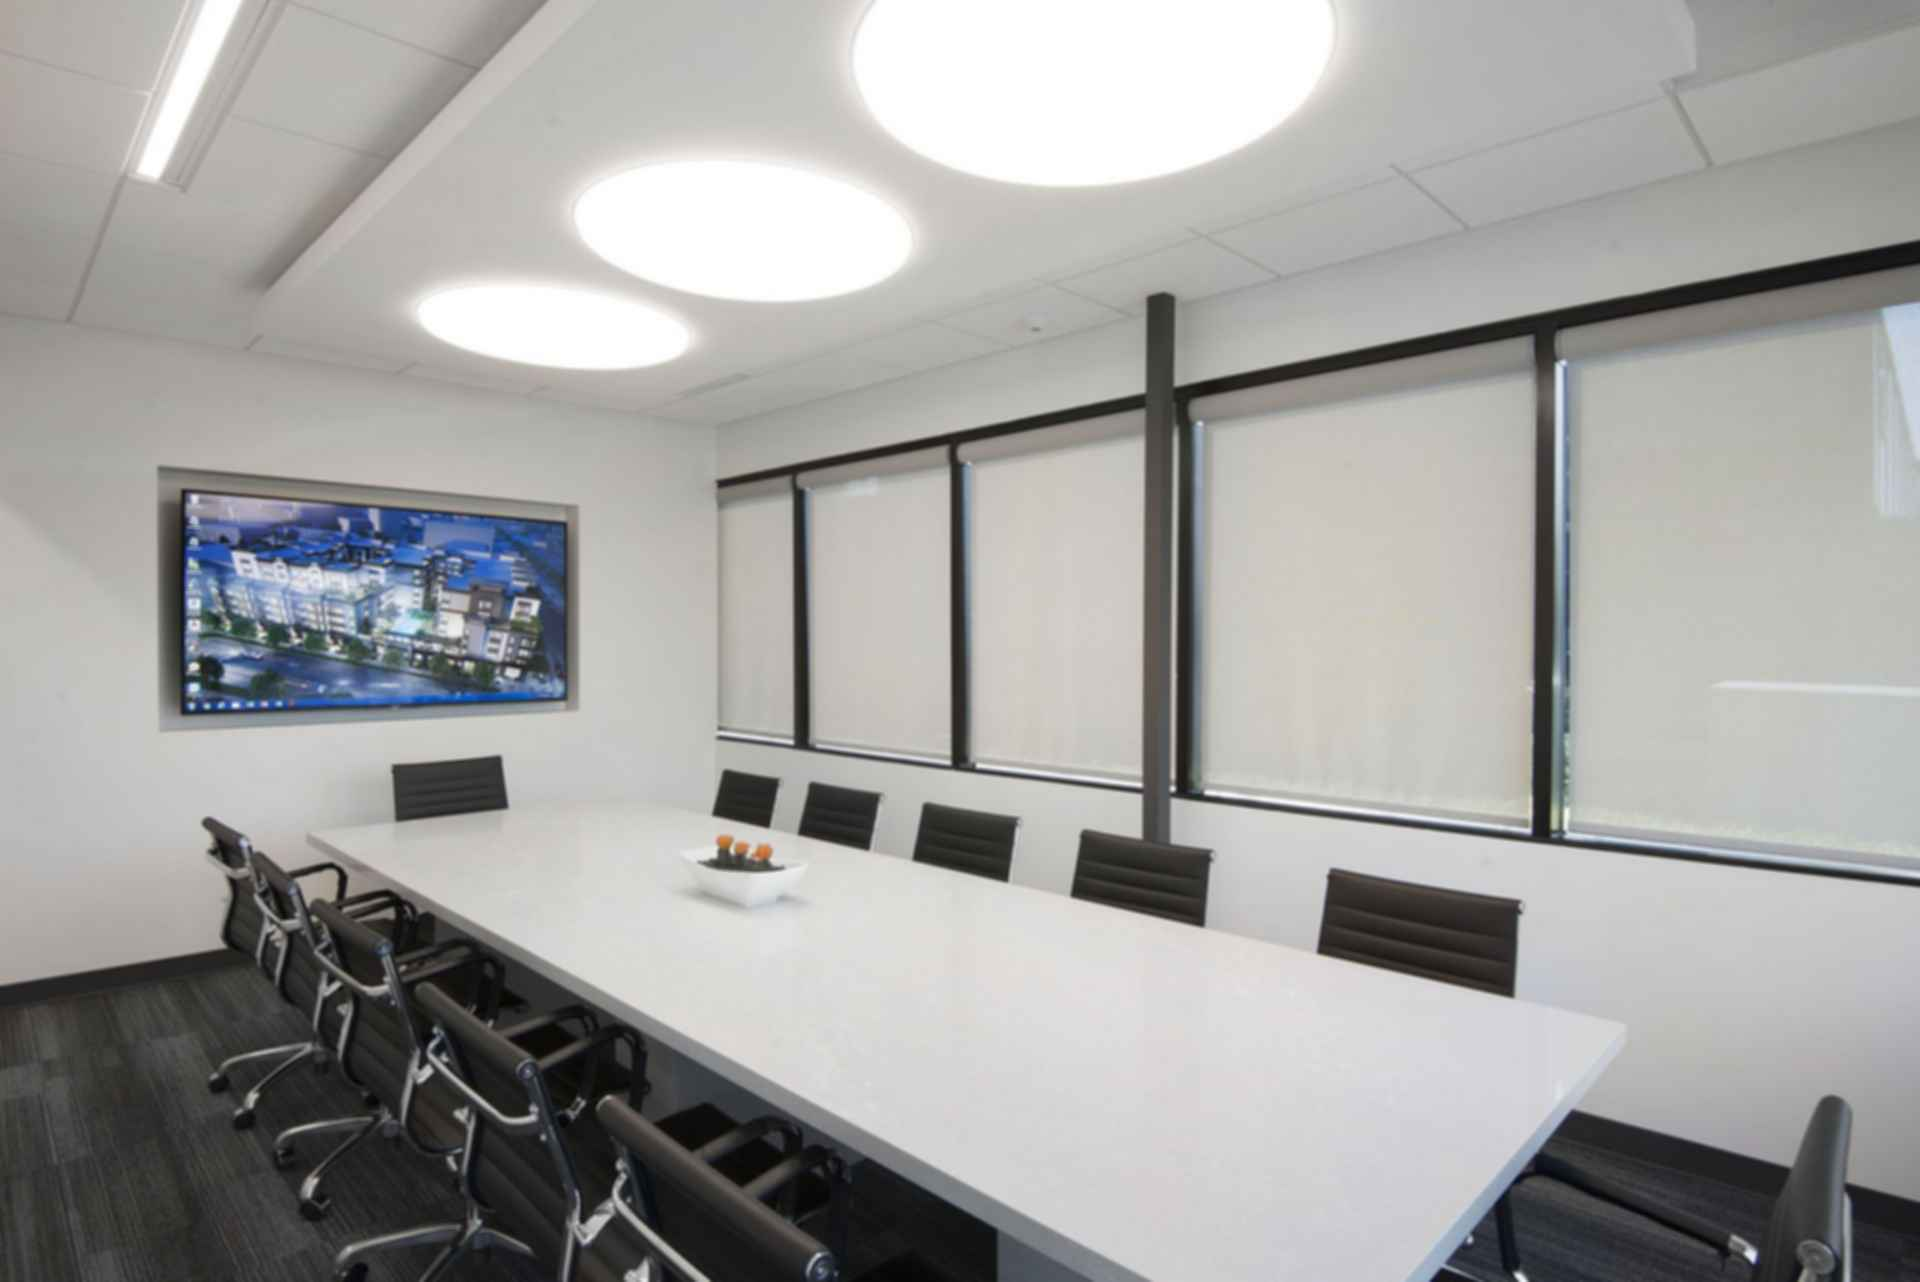 Architecture Design Collaborative Offices - Conference Room